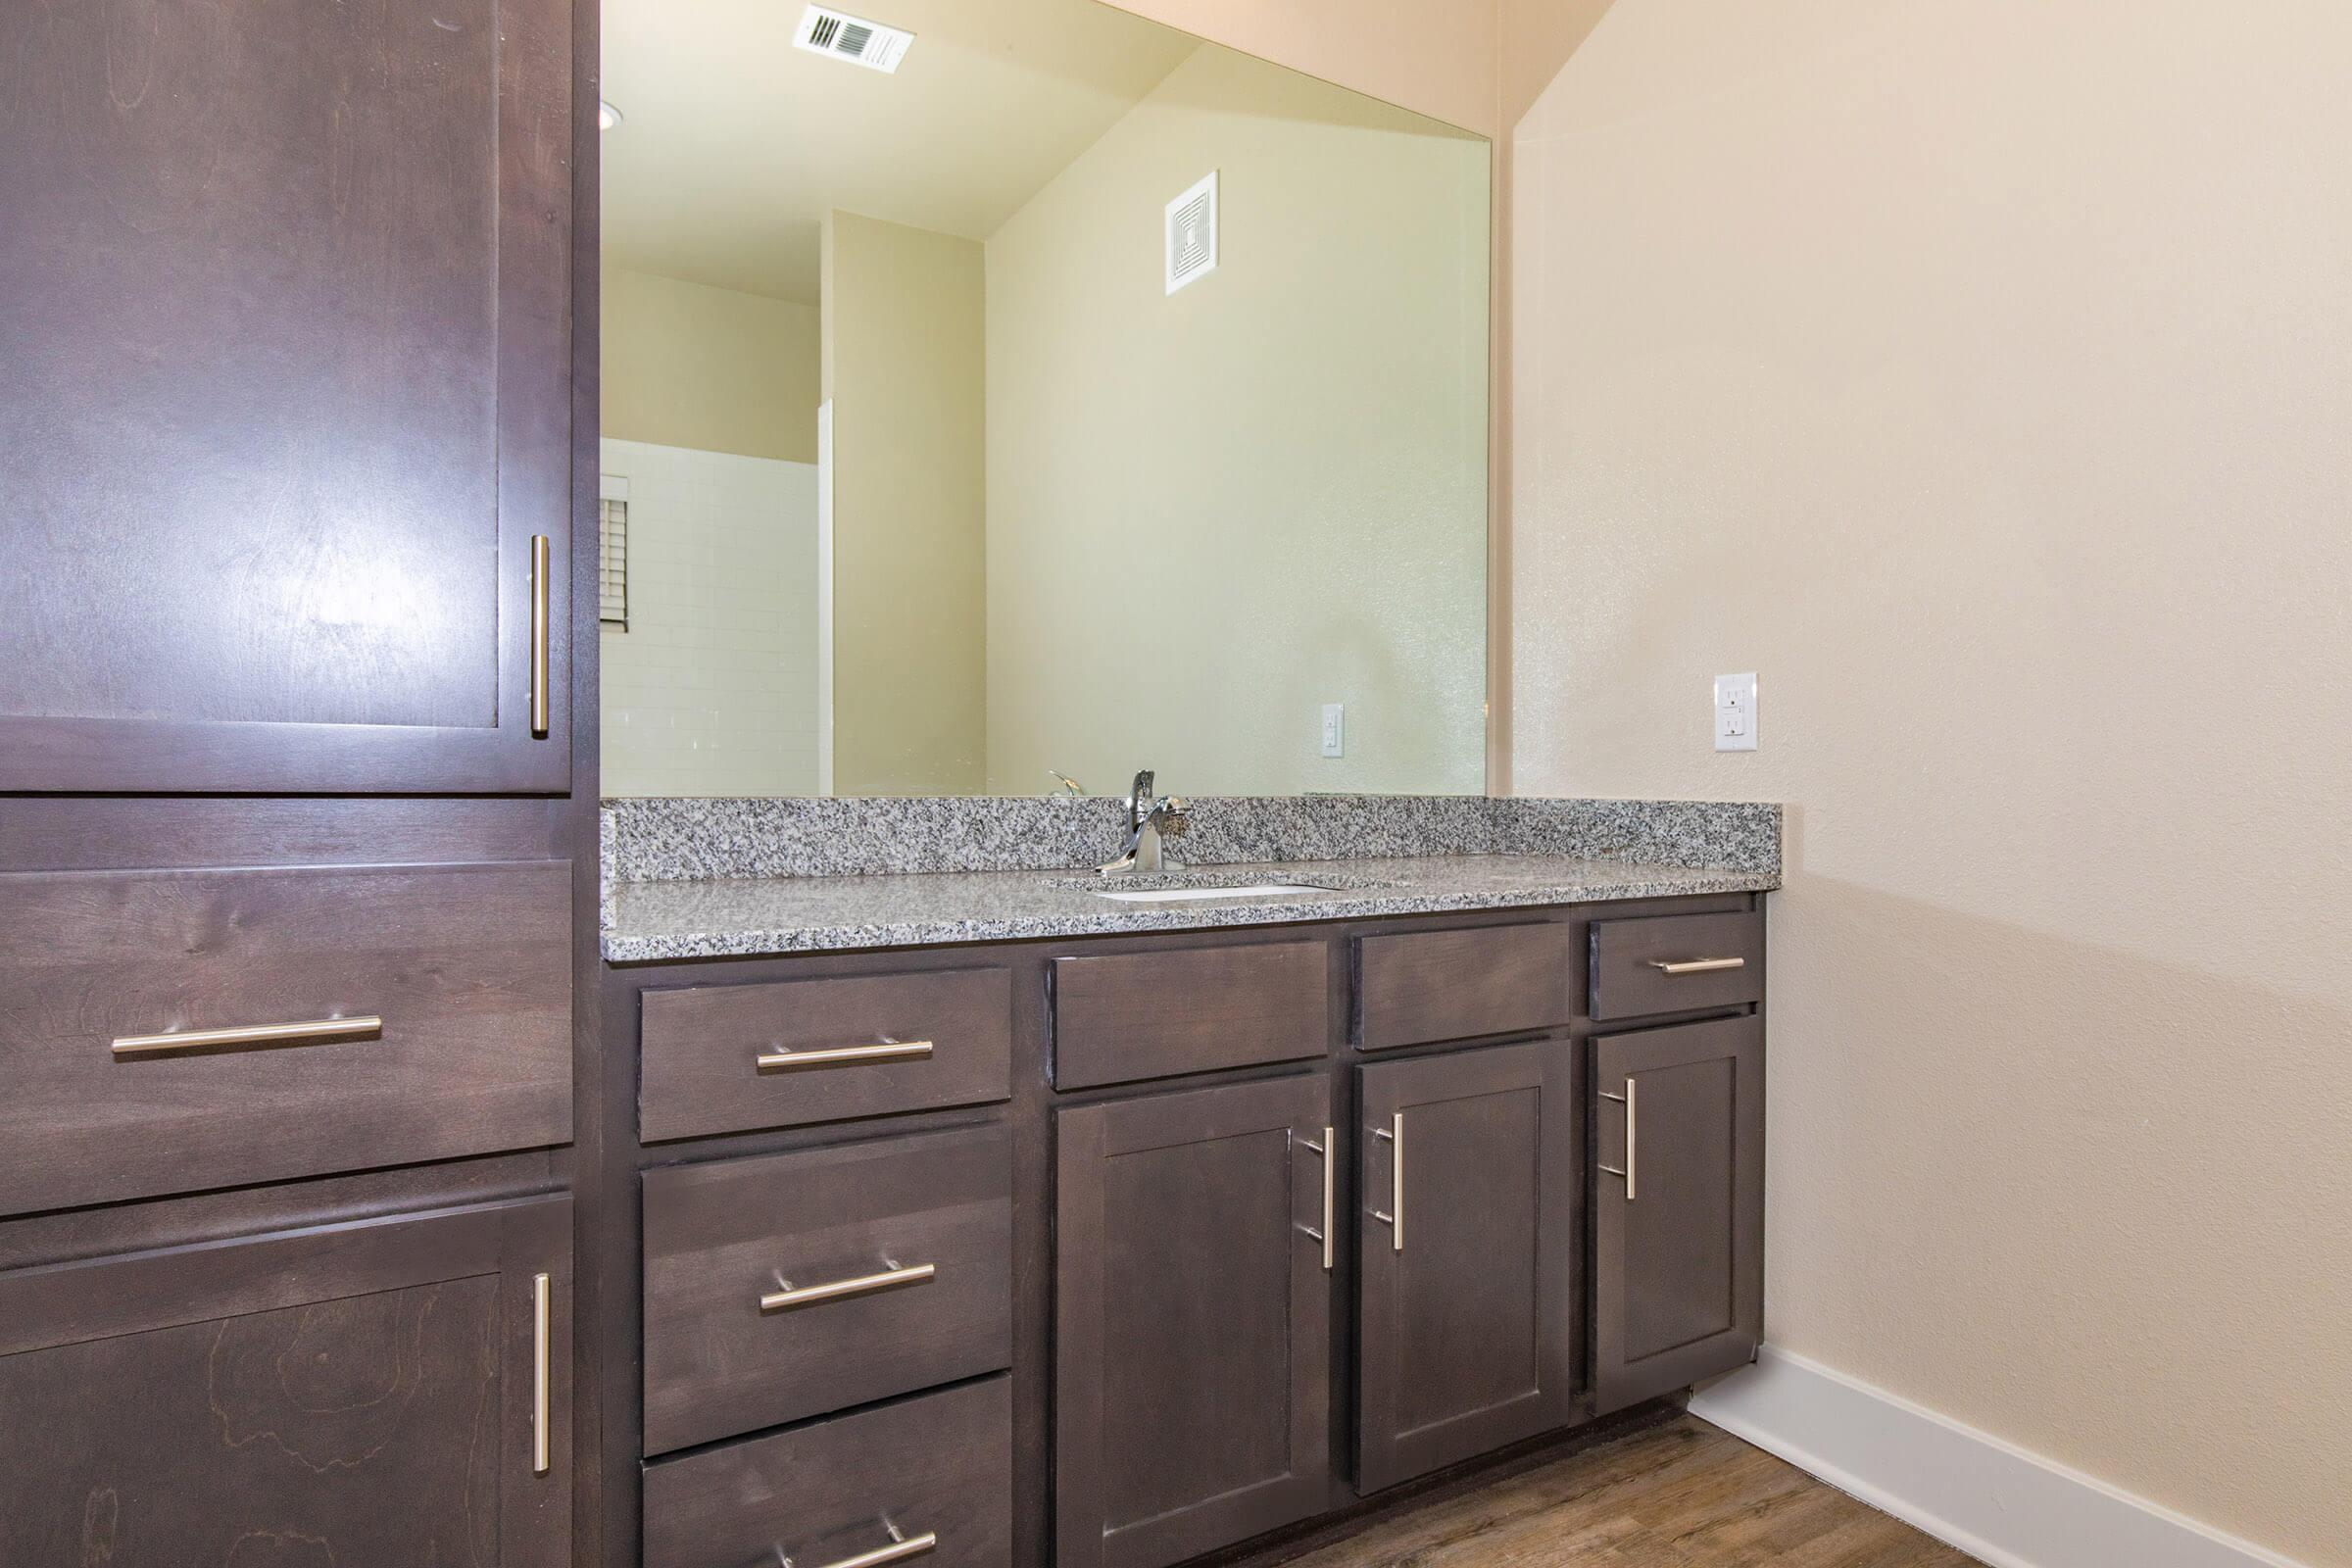 designer interior finishes  in our active adult living community